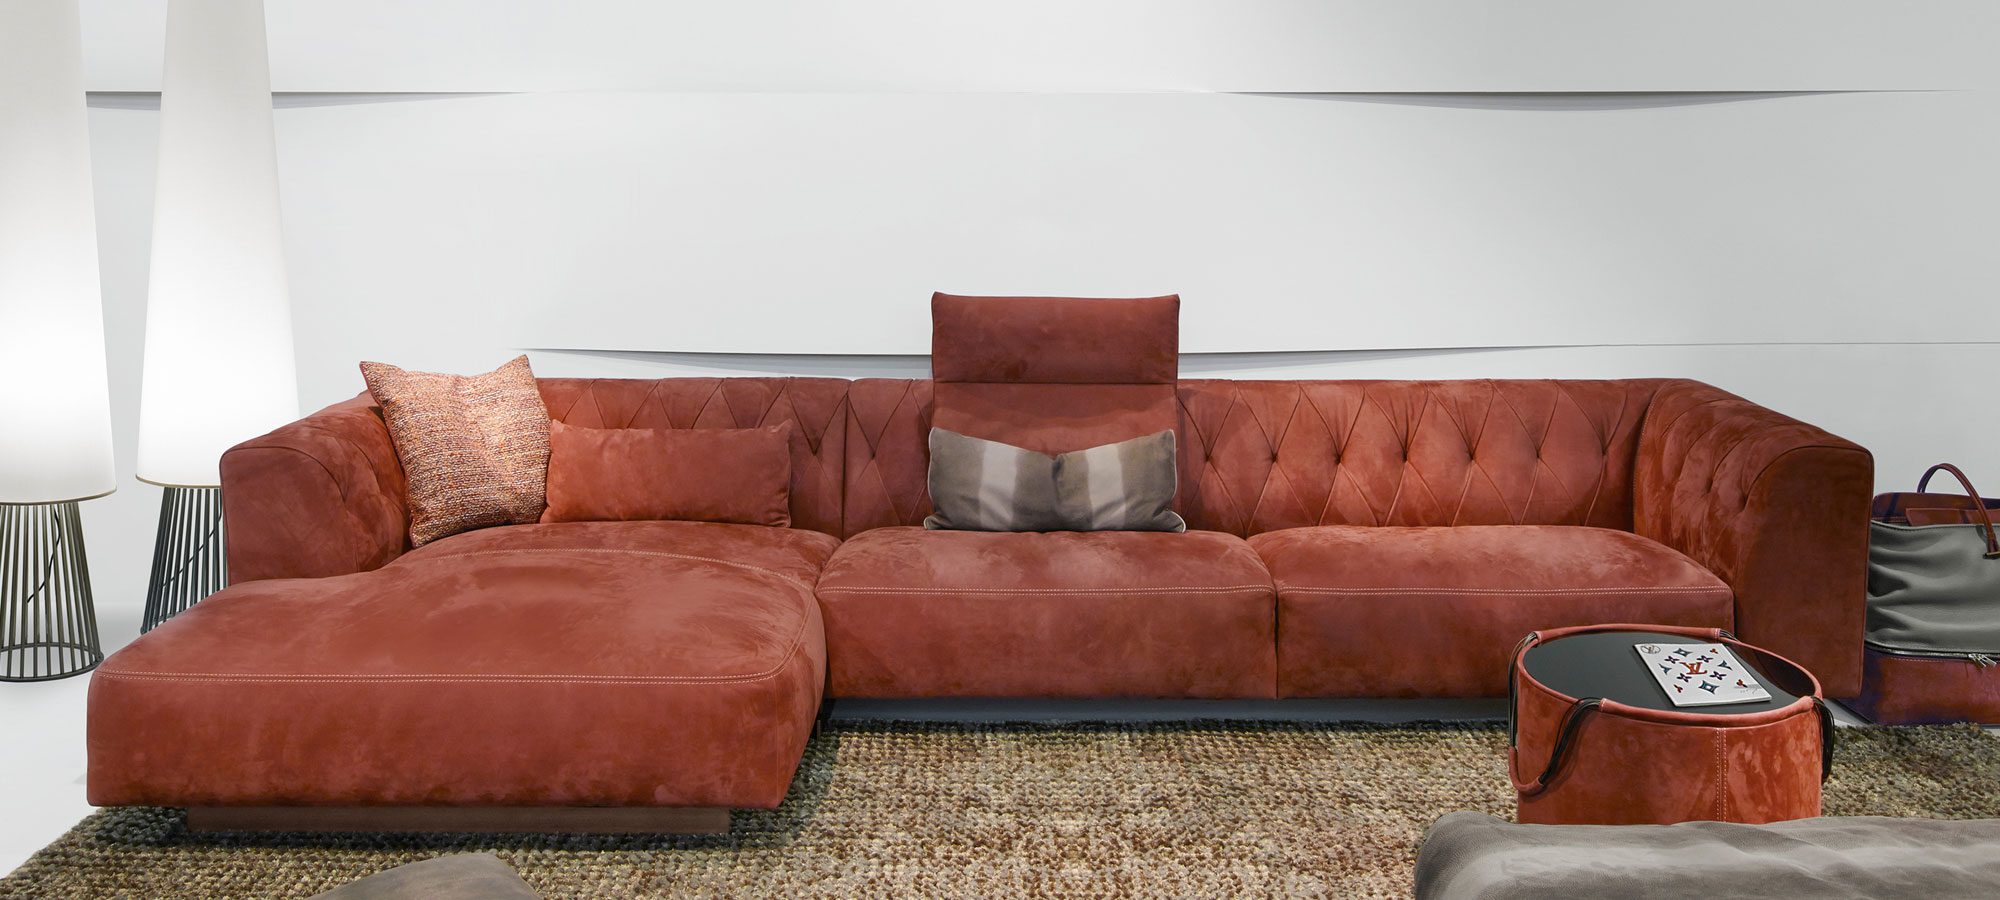 Marlon-2-sofa-gamma-italian-leather-new-trend-luxury